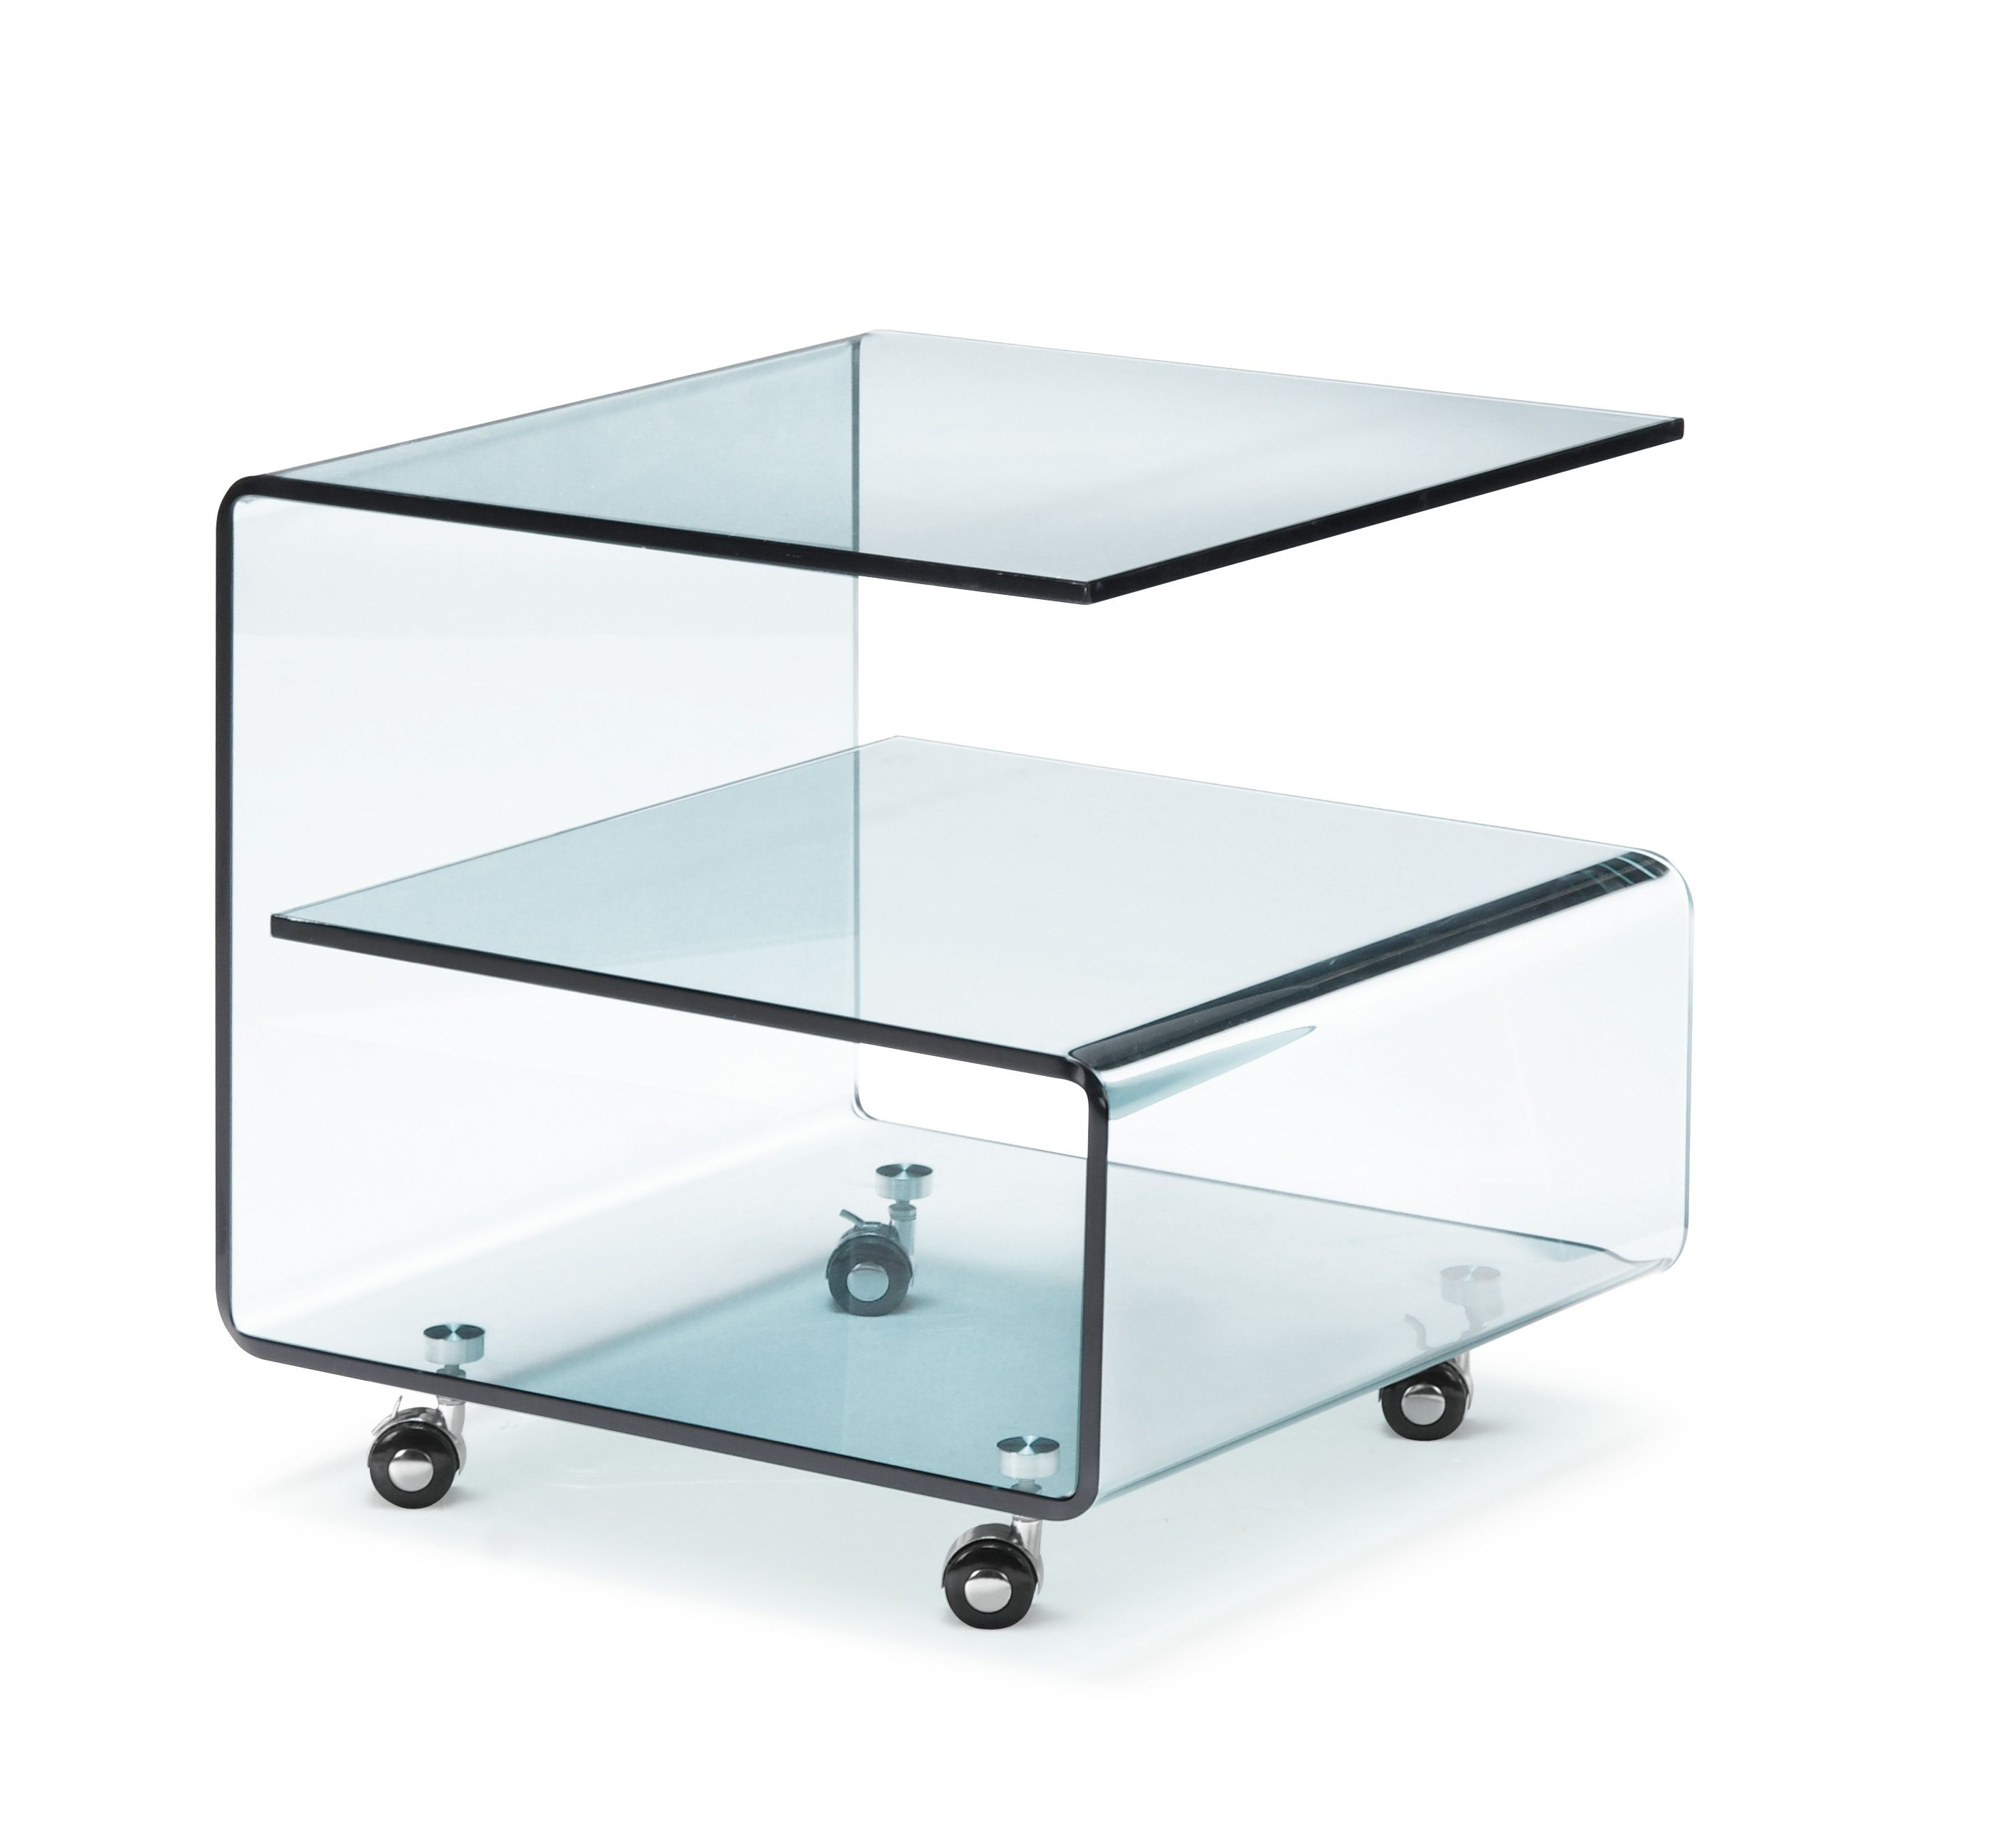 Tempered Glass Dining Table ЖурнаРьные стоРики